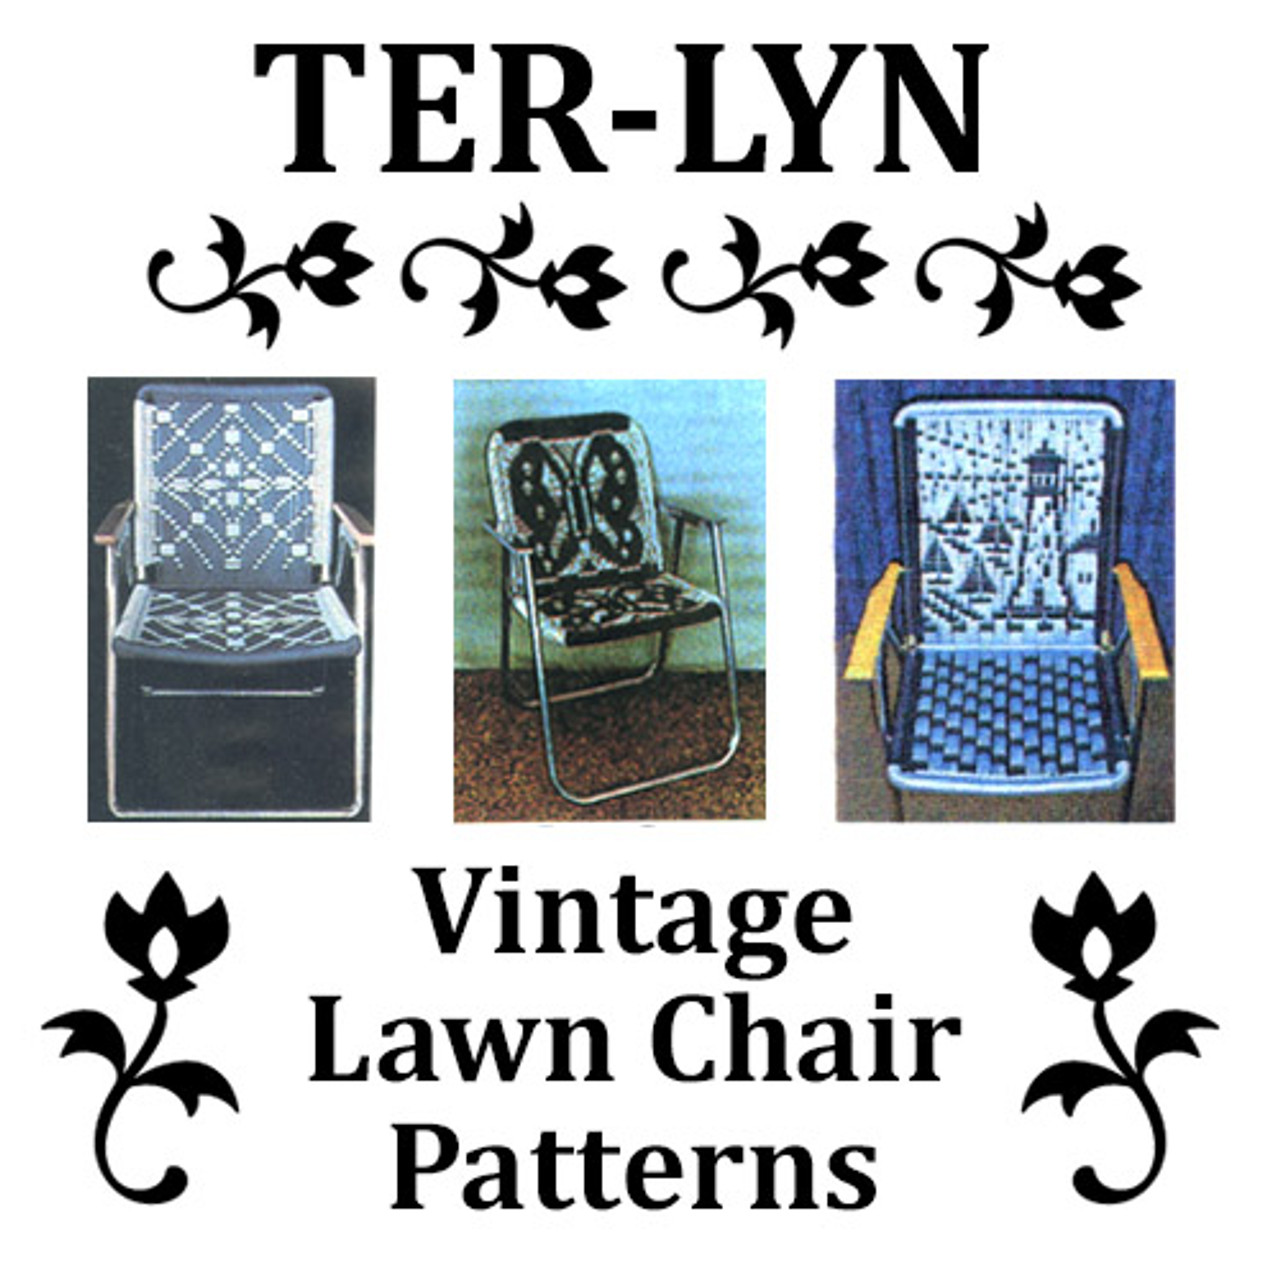 Terlyn Lawn Chair Patterns Weave Your Own Lawn Art